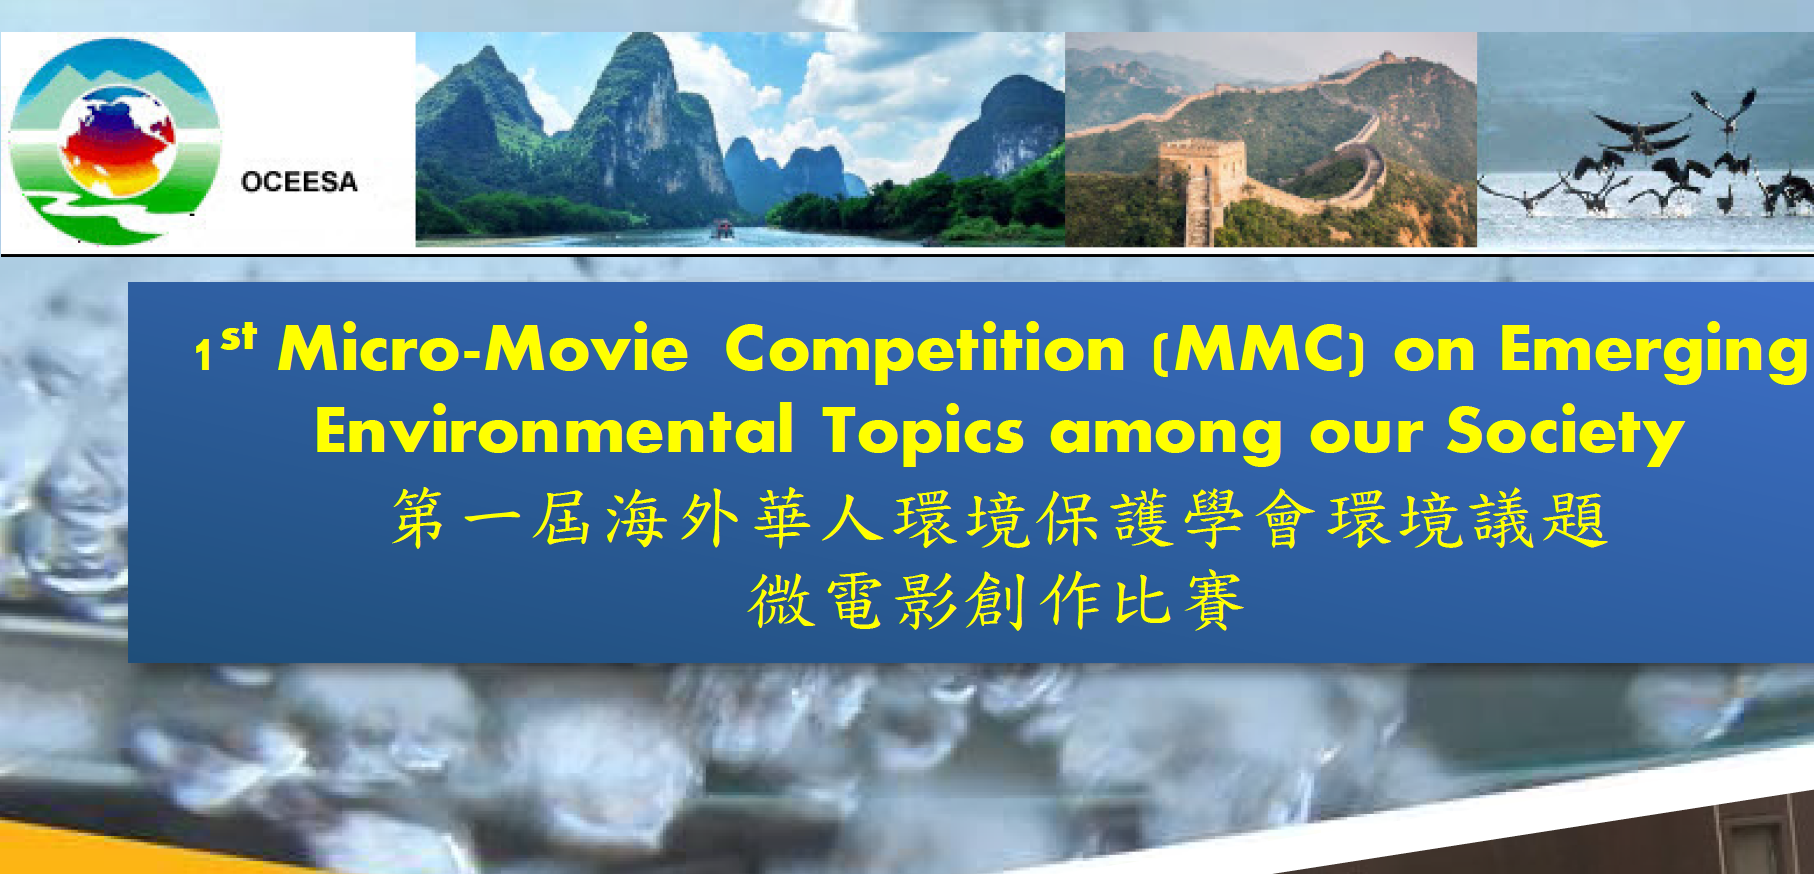 Affiliate Event: 1st Micro-Movie Competition (MMC) on Emerging Environmental Topics among our Society